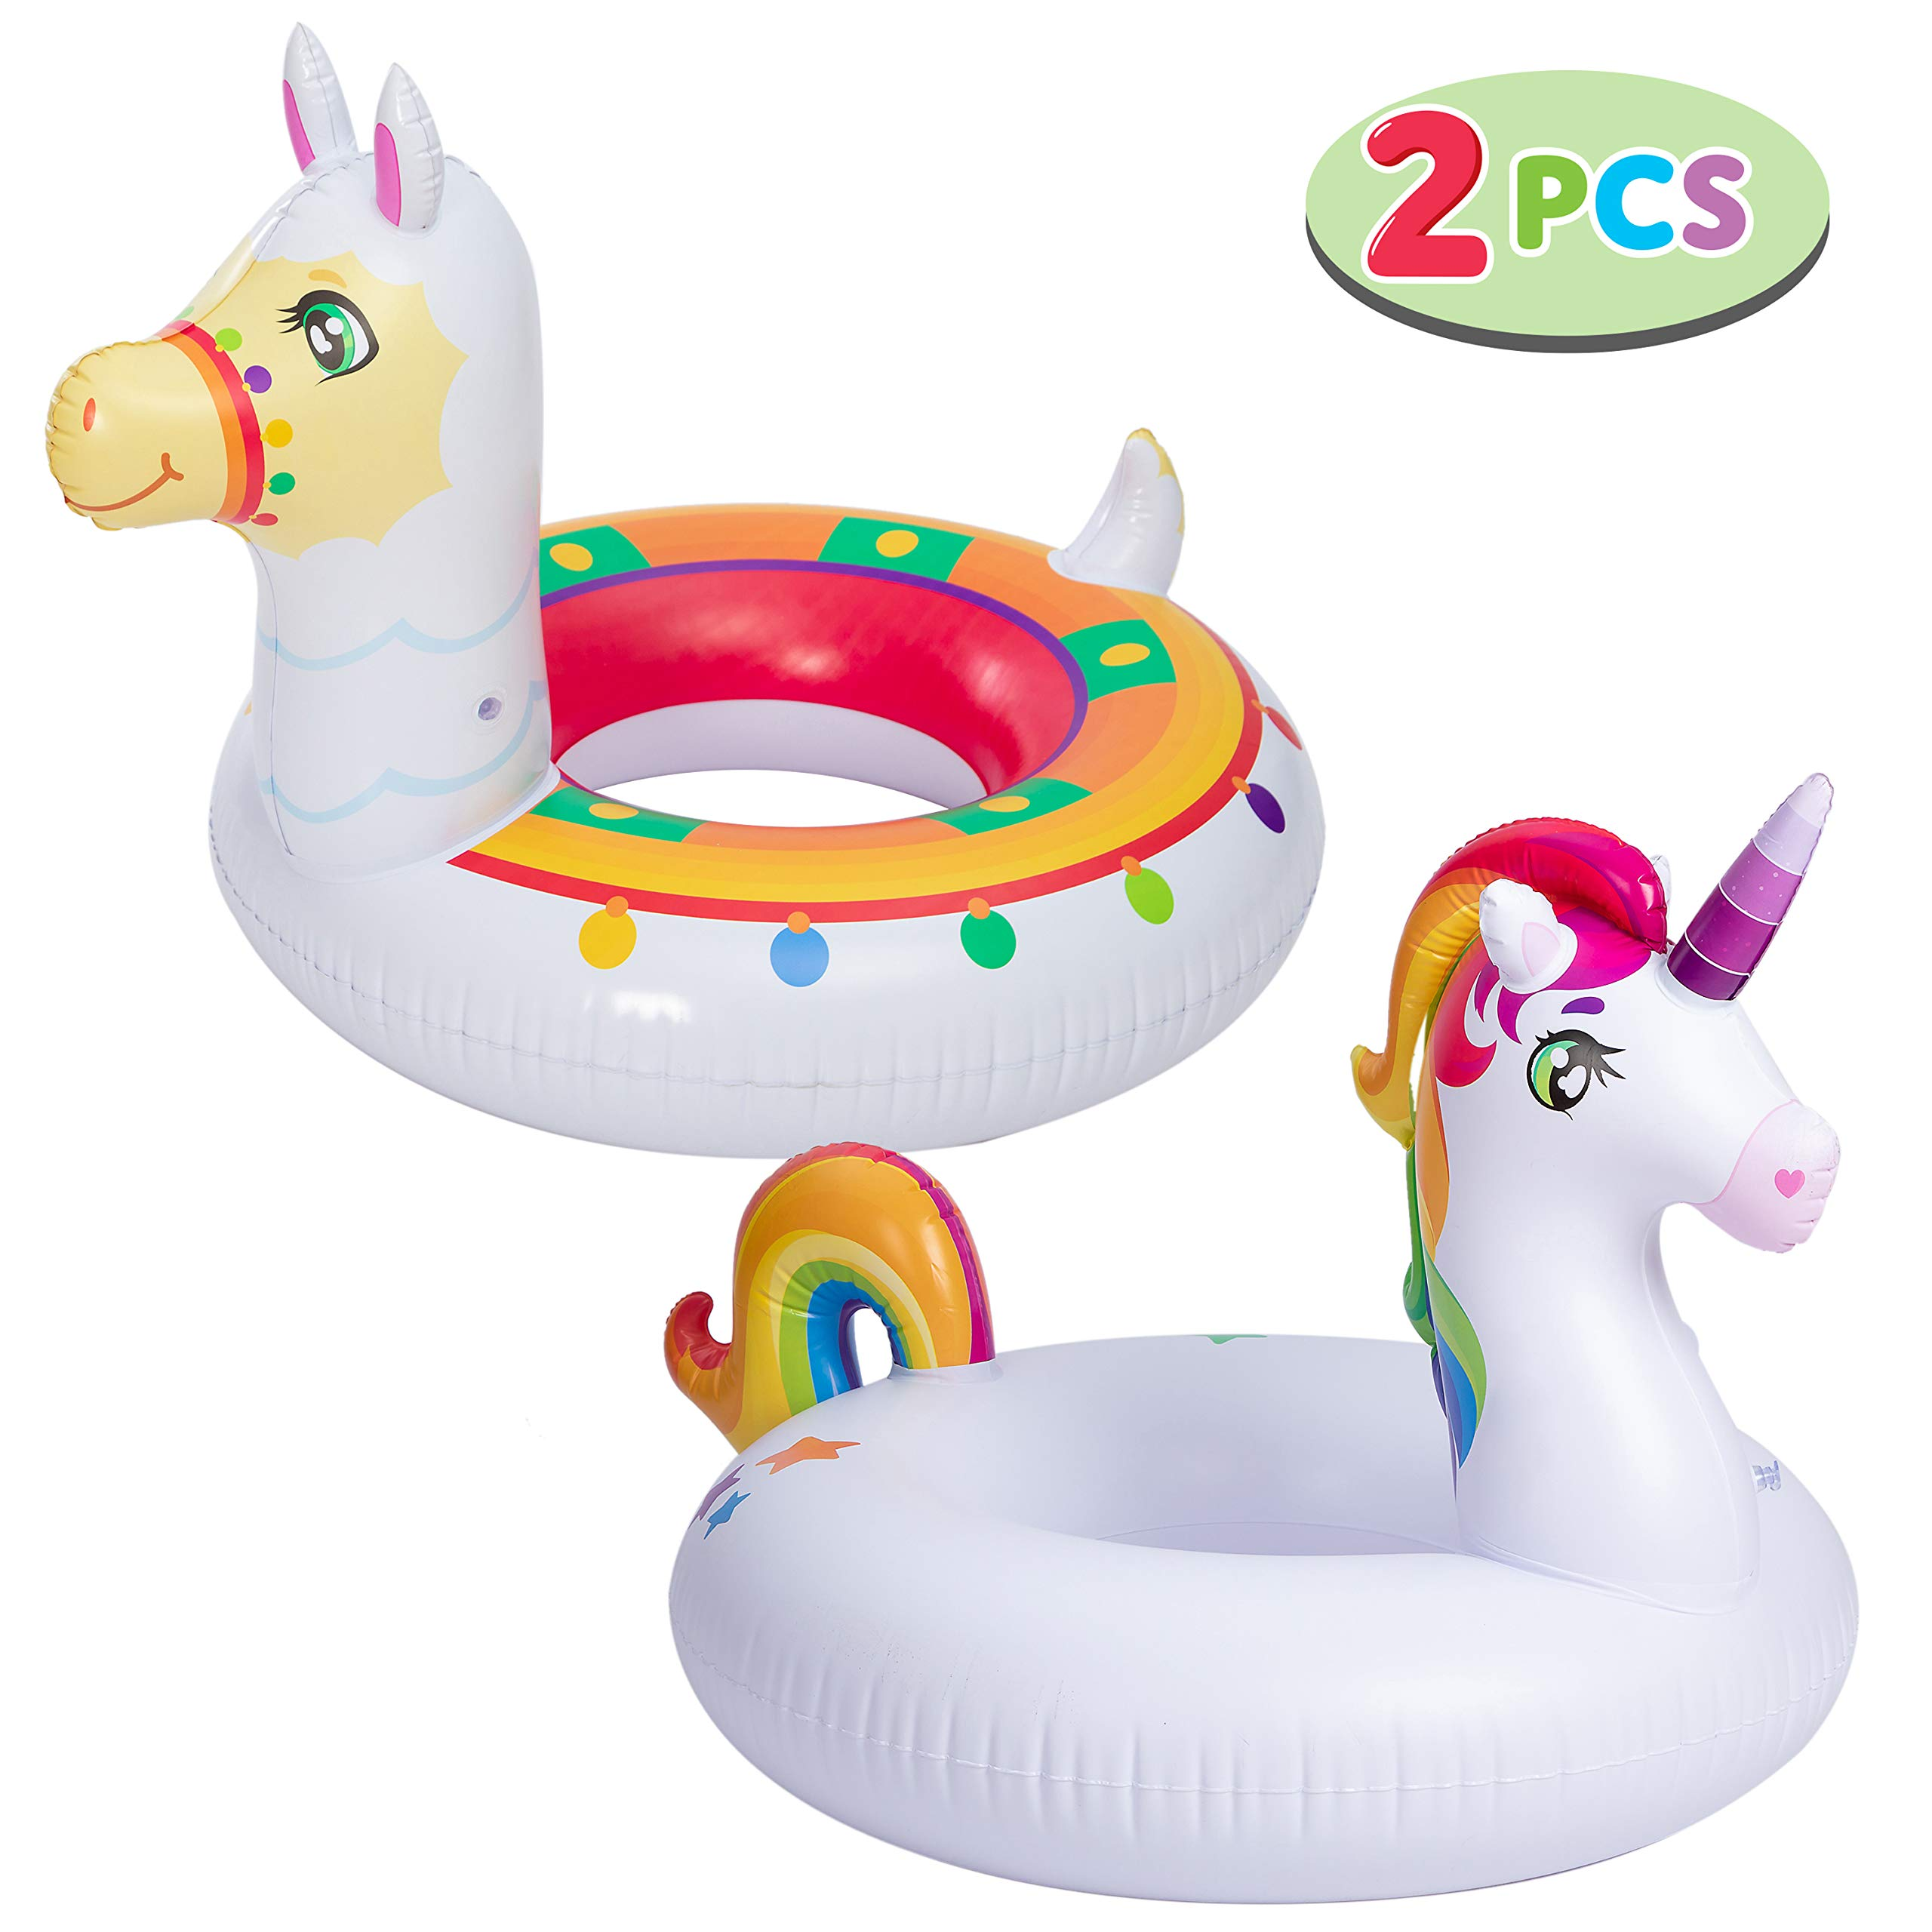 """JOYIN Inflatable Unicorn & Llama Inflatable Pool Float (2 Pack),35.3"""" Fun Beach Floaties, Swim Party Toys, Summer Pool Raft Lounger, Pool Party Decorations for Adults & Kids"""